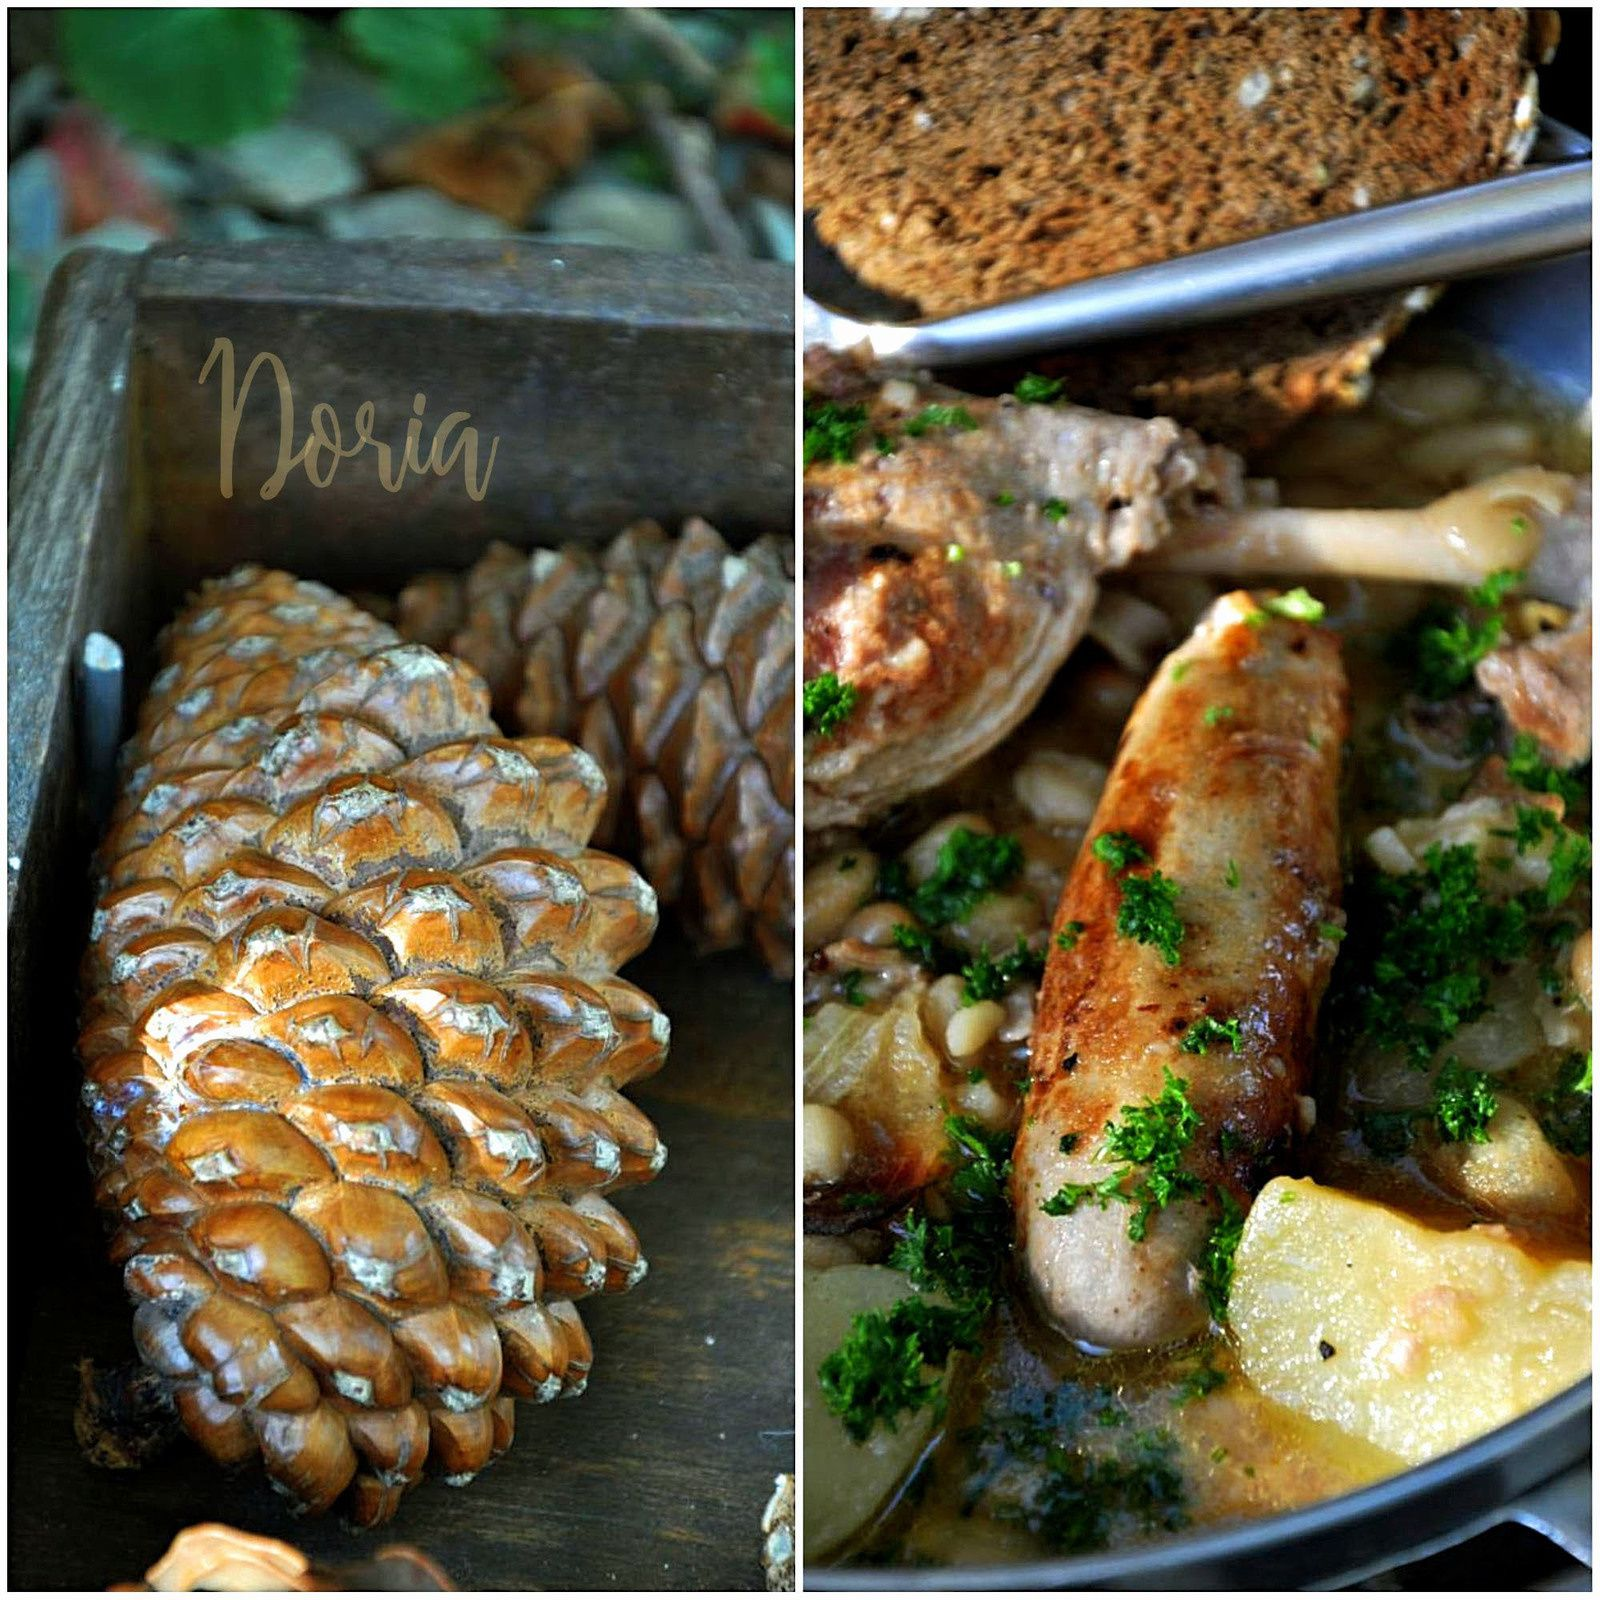 British sausages and confit duck legs with cannellini beans